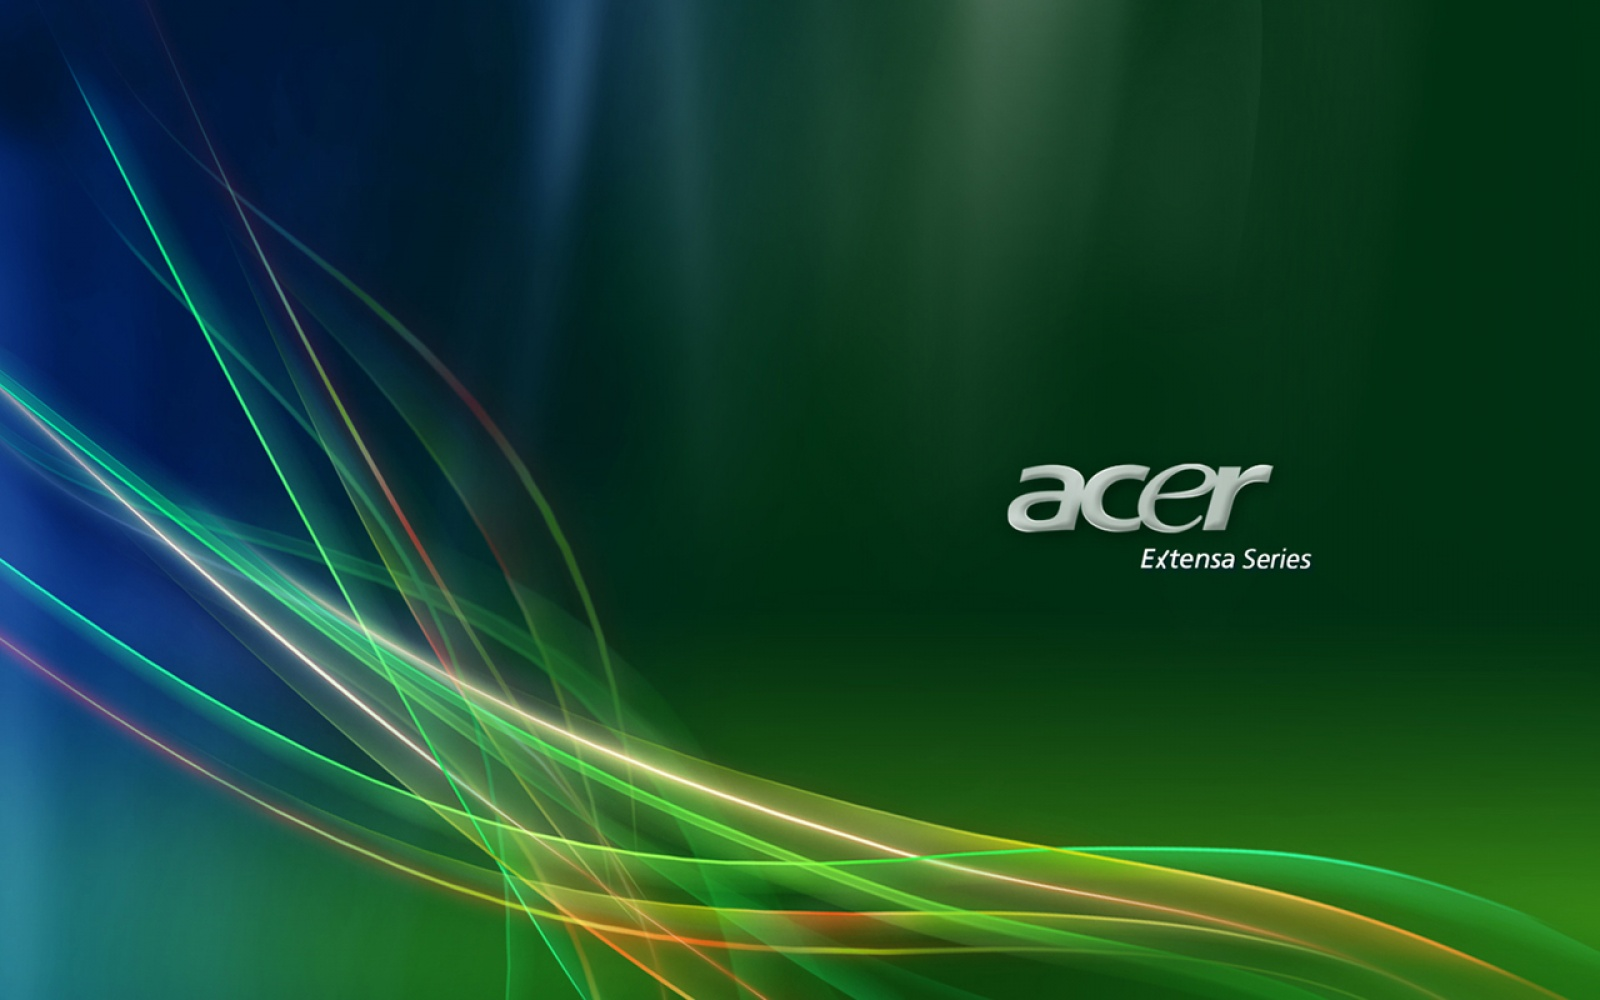 50 Acer Windows 10 Wallpaper On Wallpapersafari